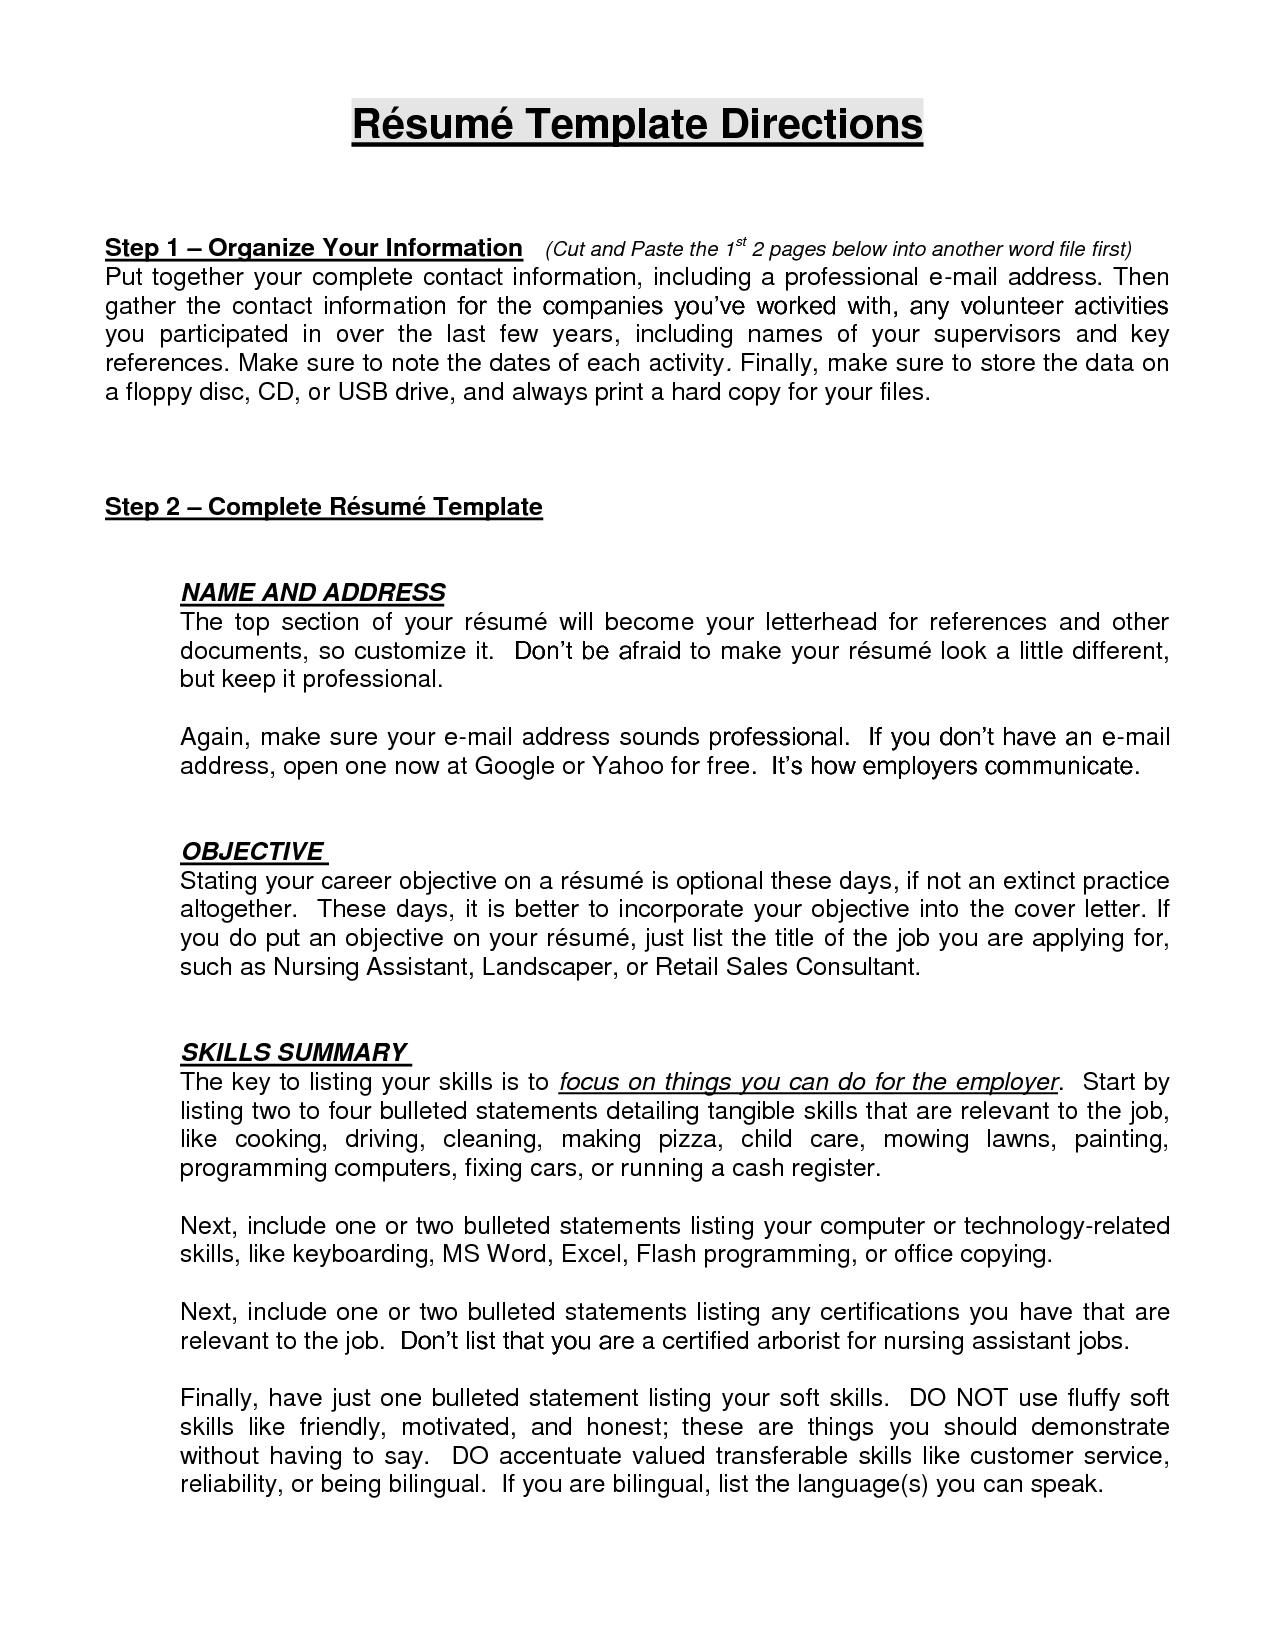 Good Resume Objective Resume Objective Statements Ideas  Httpwwwjobresumewebsite